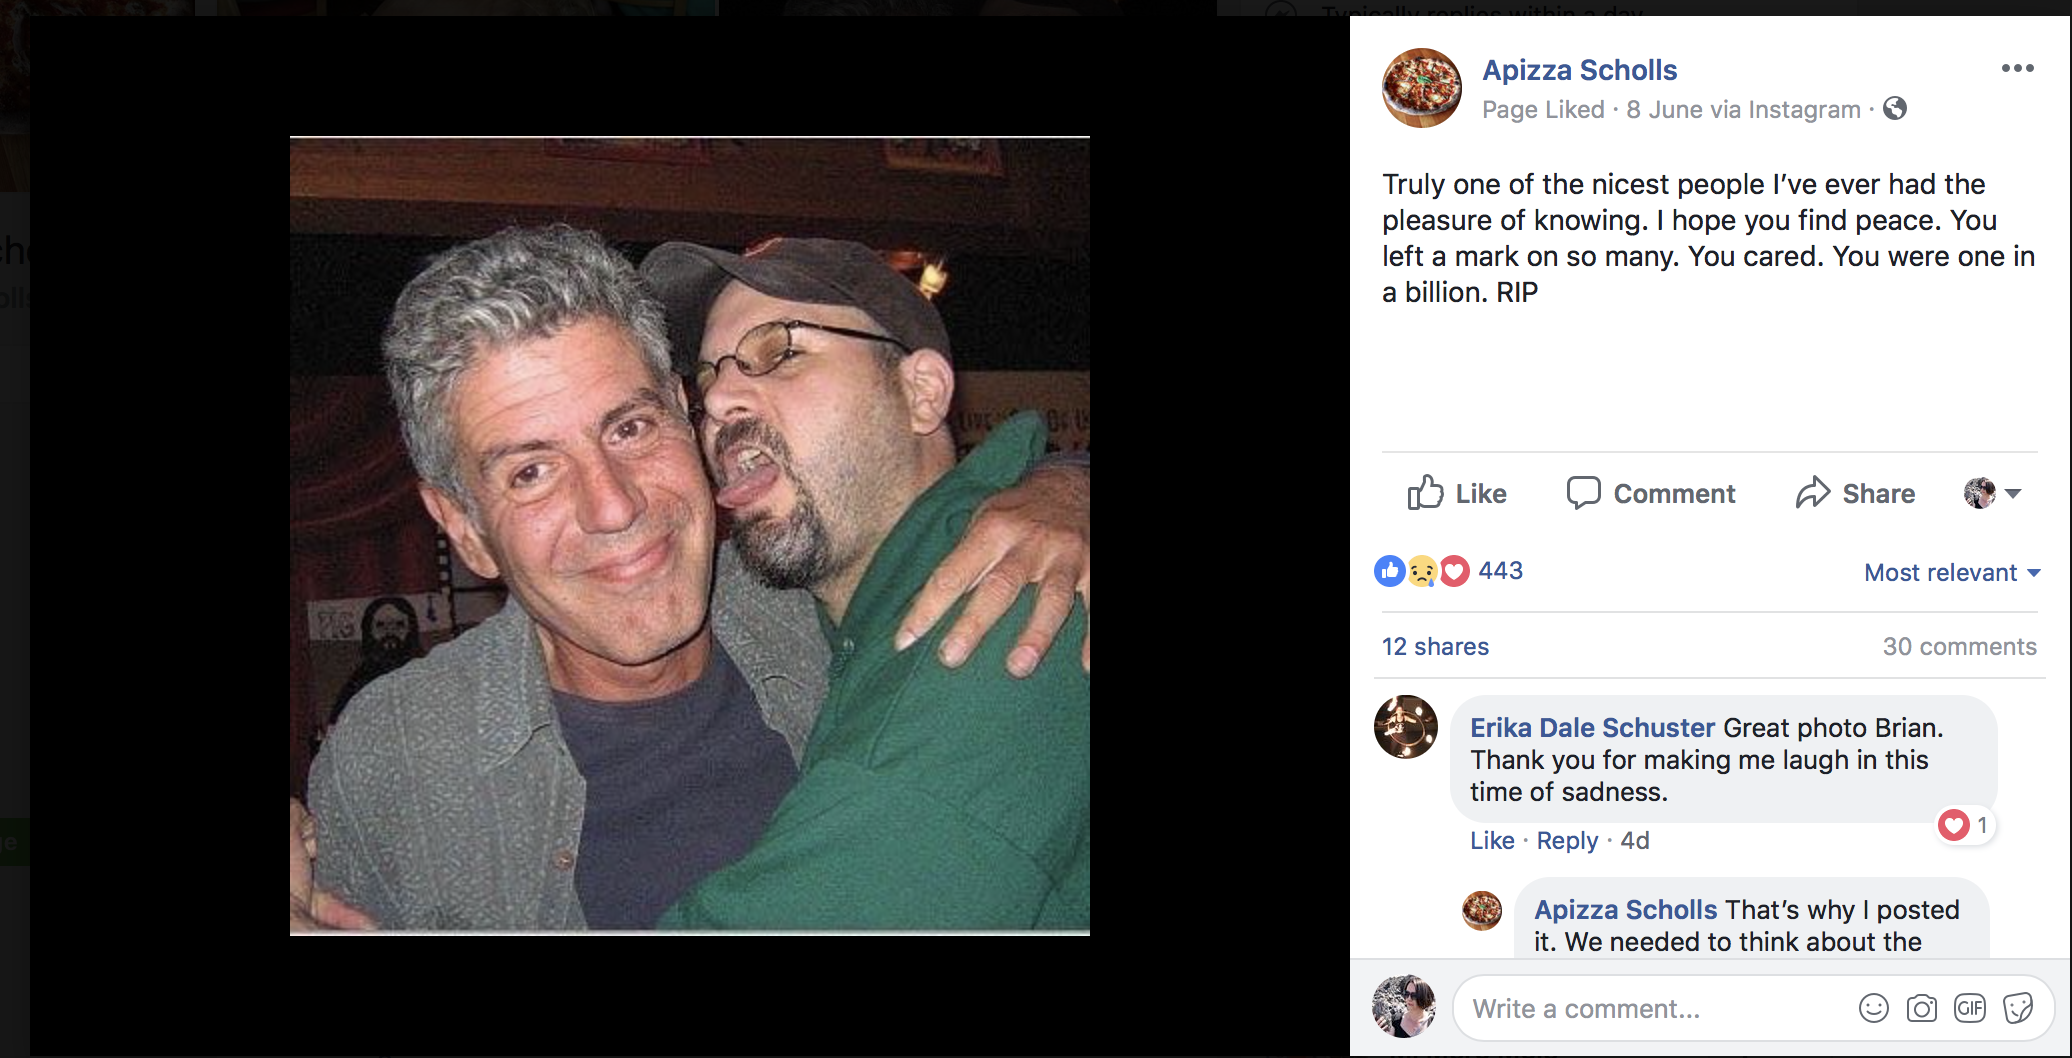 Apizza Scholls Anthony Bourdain Brian